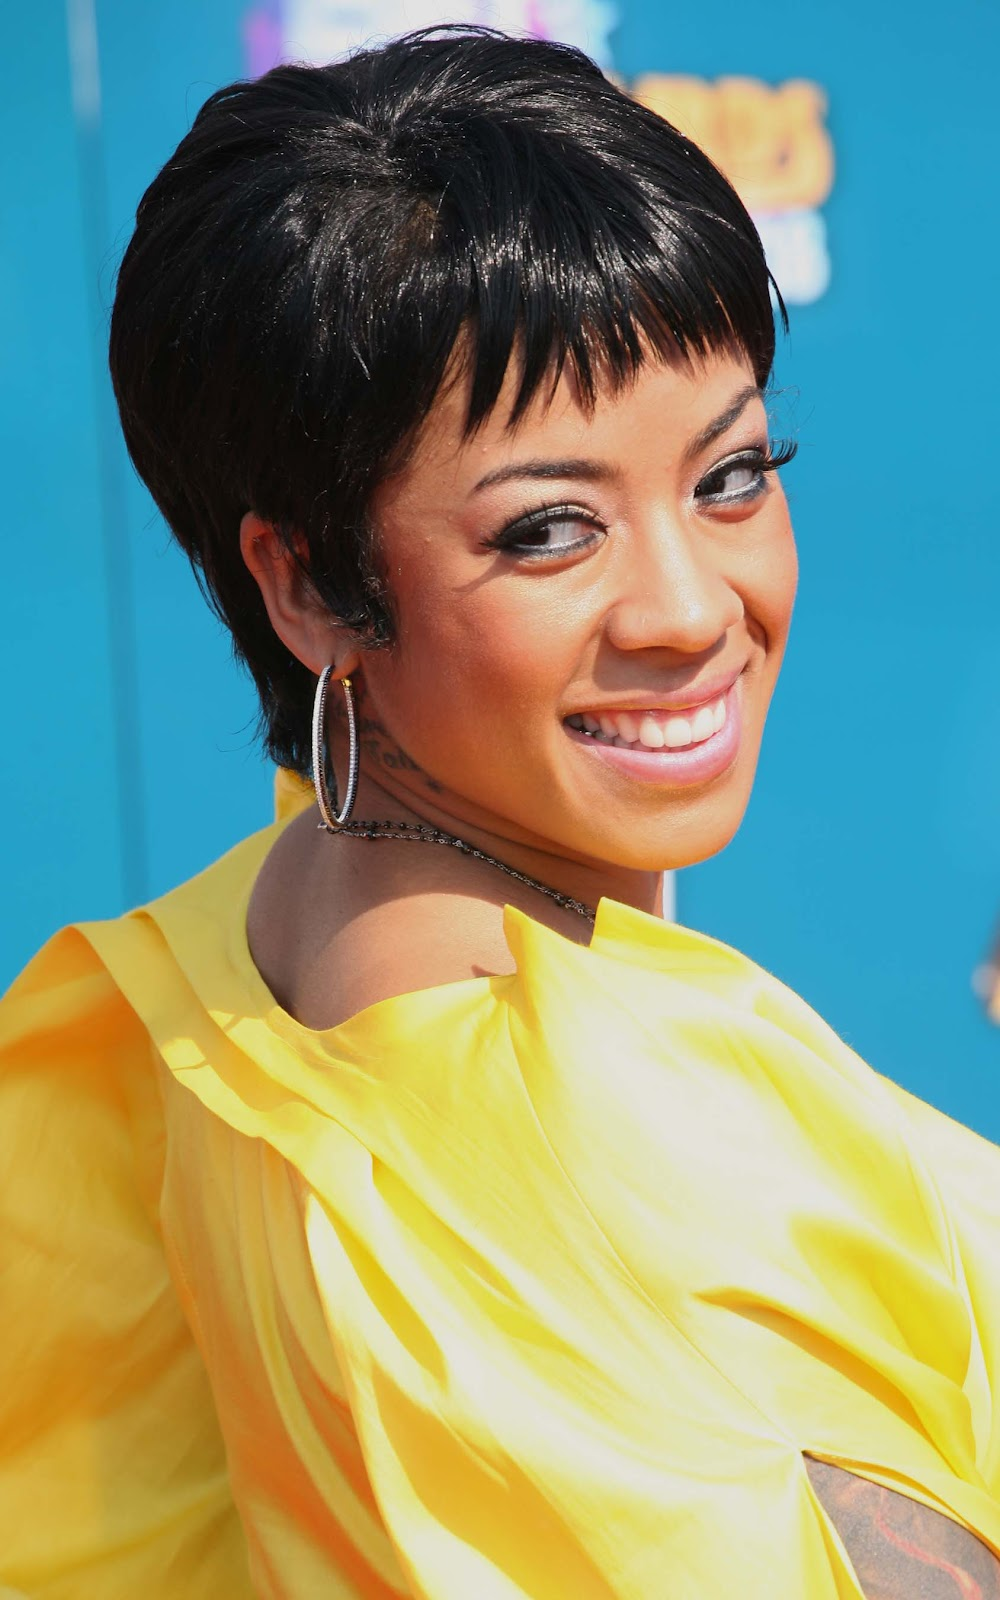 Keyshia Cole Hairstyle Trends Keyshia Cole Hairstyle Pictures